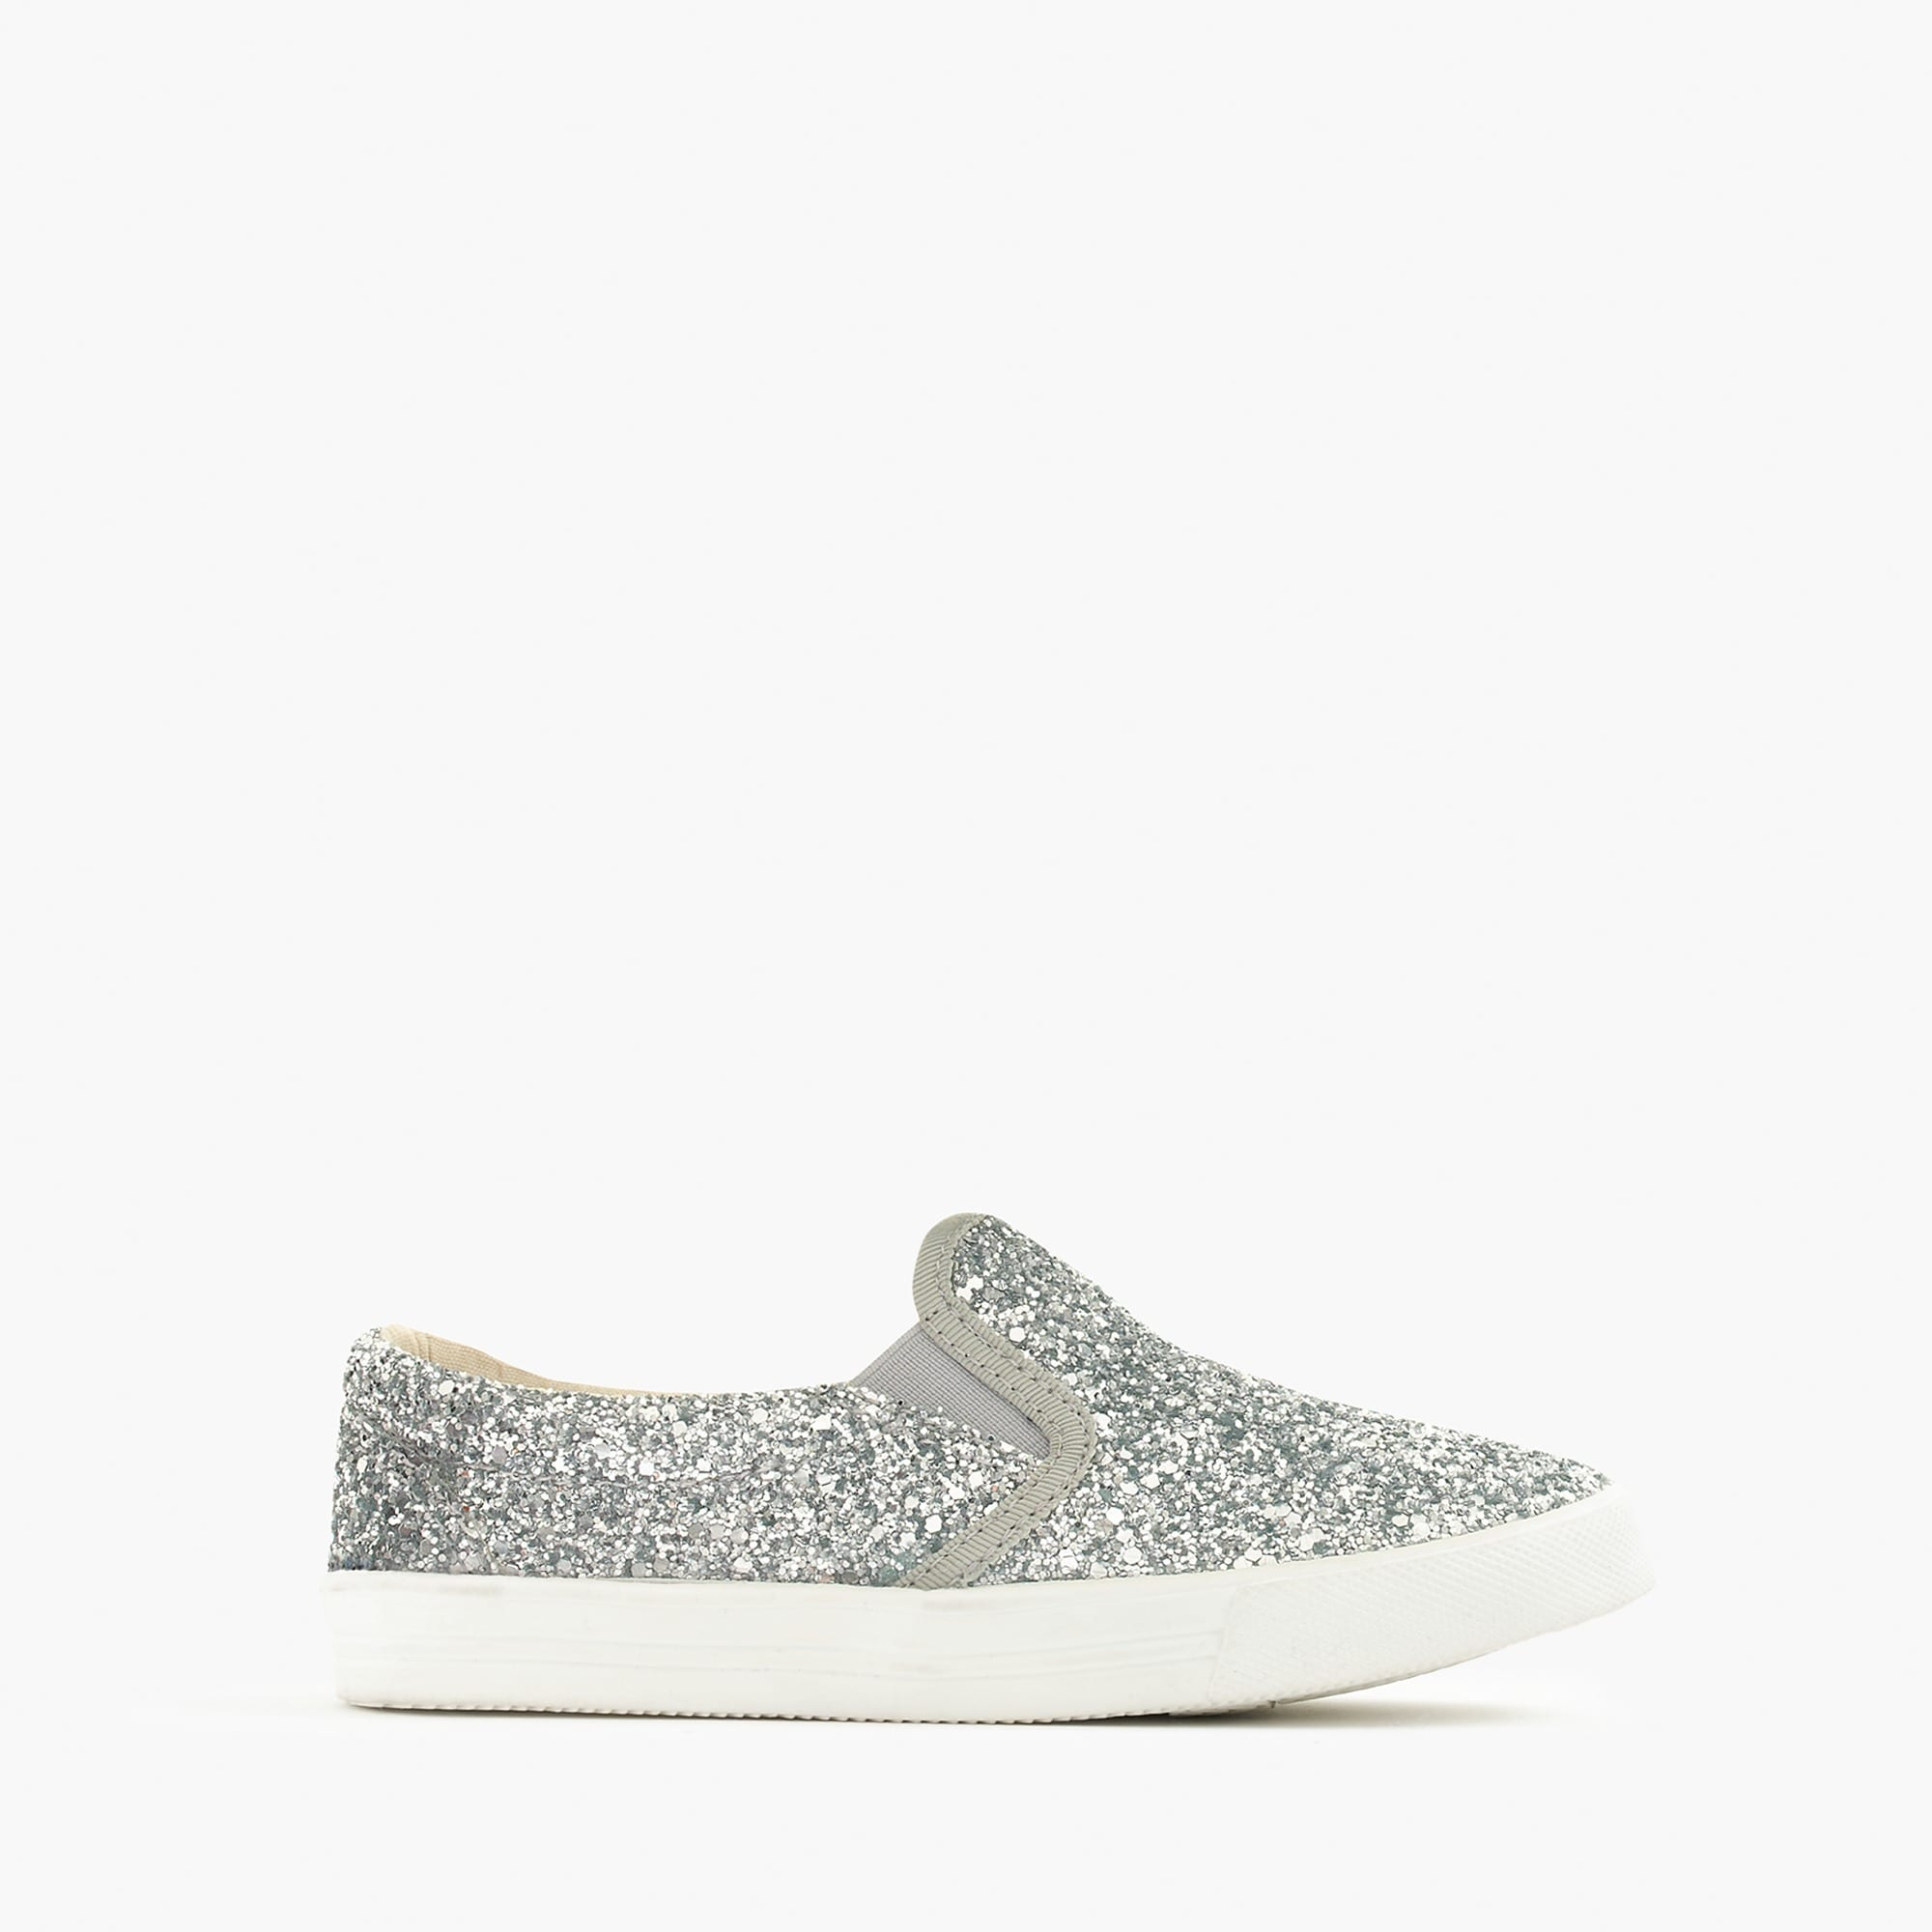 Girls' slide sneakers in glitter girl shoes & sneakers c